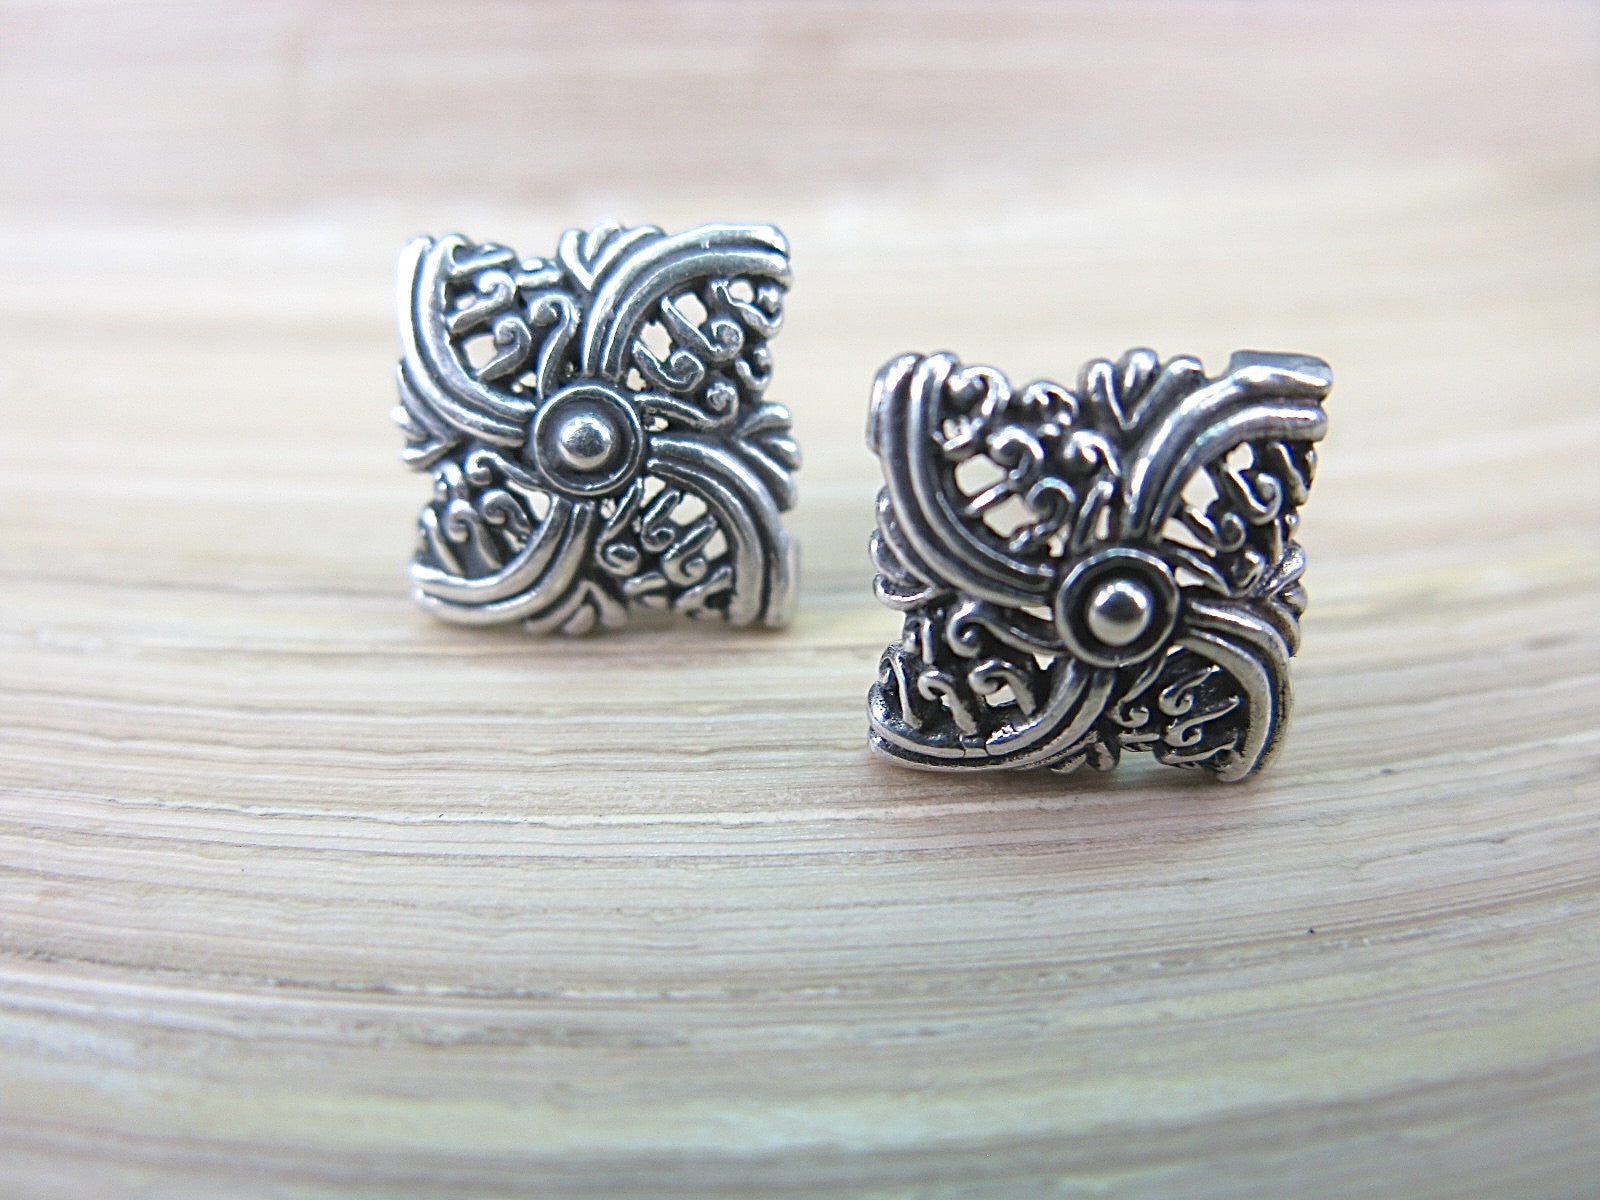 Filigree Square Balinese Swirl 925 Sterling Silver Stud Earrings Stud - Faith Owl